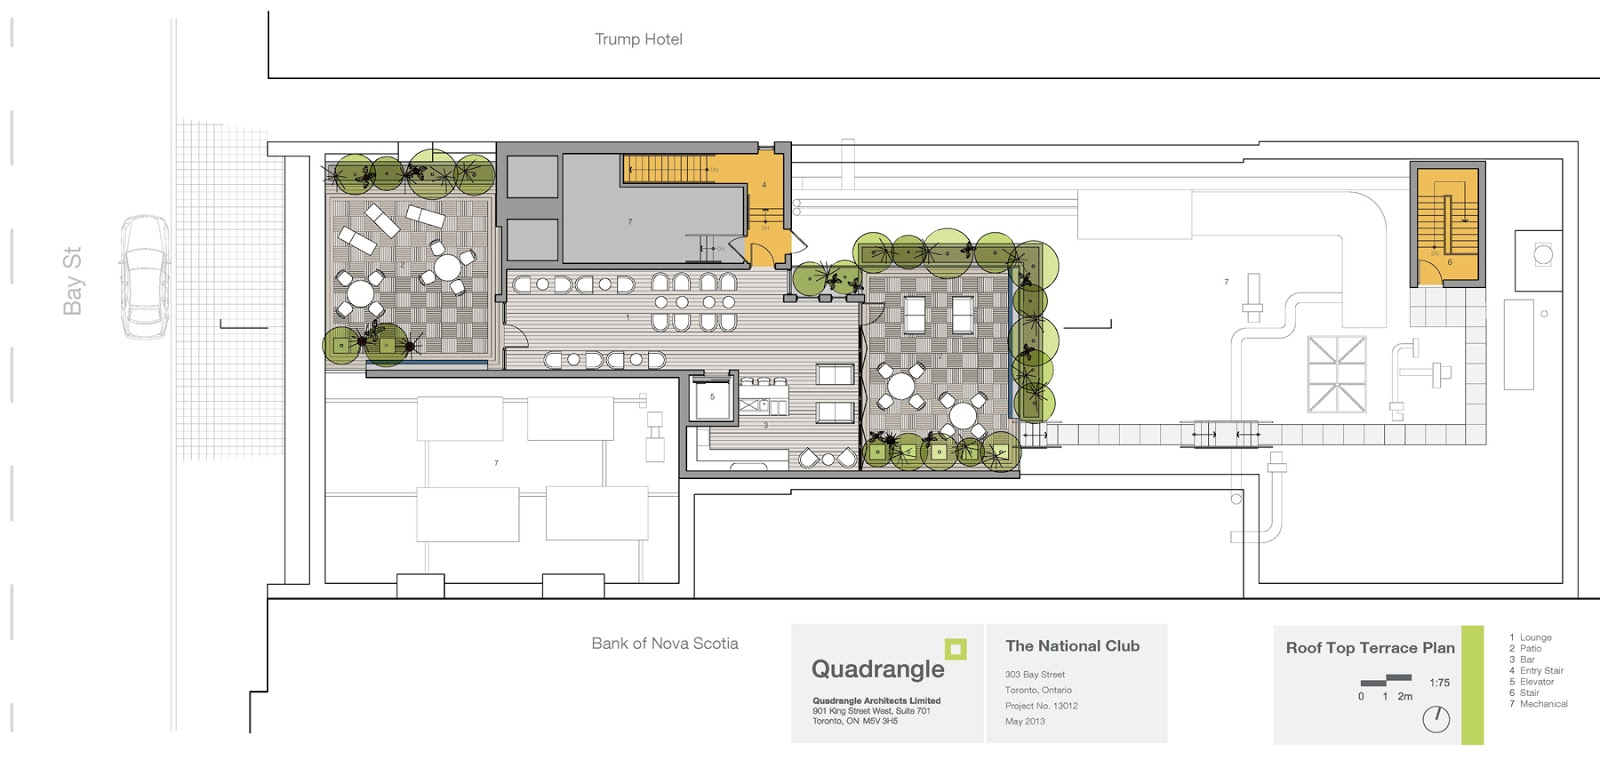 Attractive National Club Rooftop Patio Floor Plan